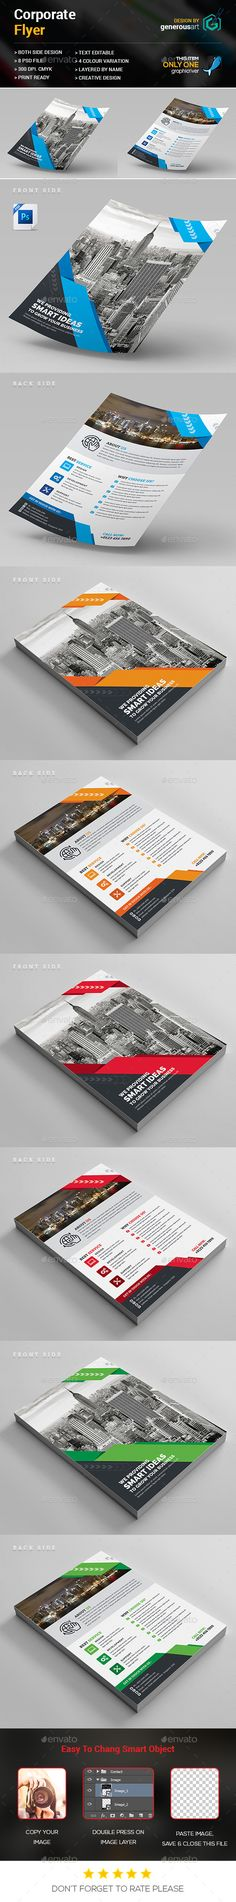 Handyman Flyer - handyman flyer template